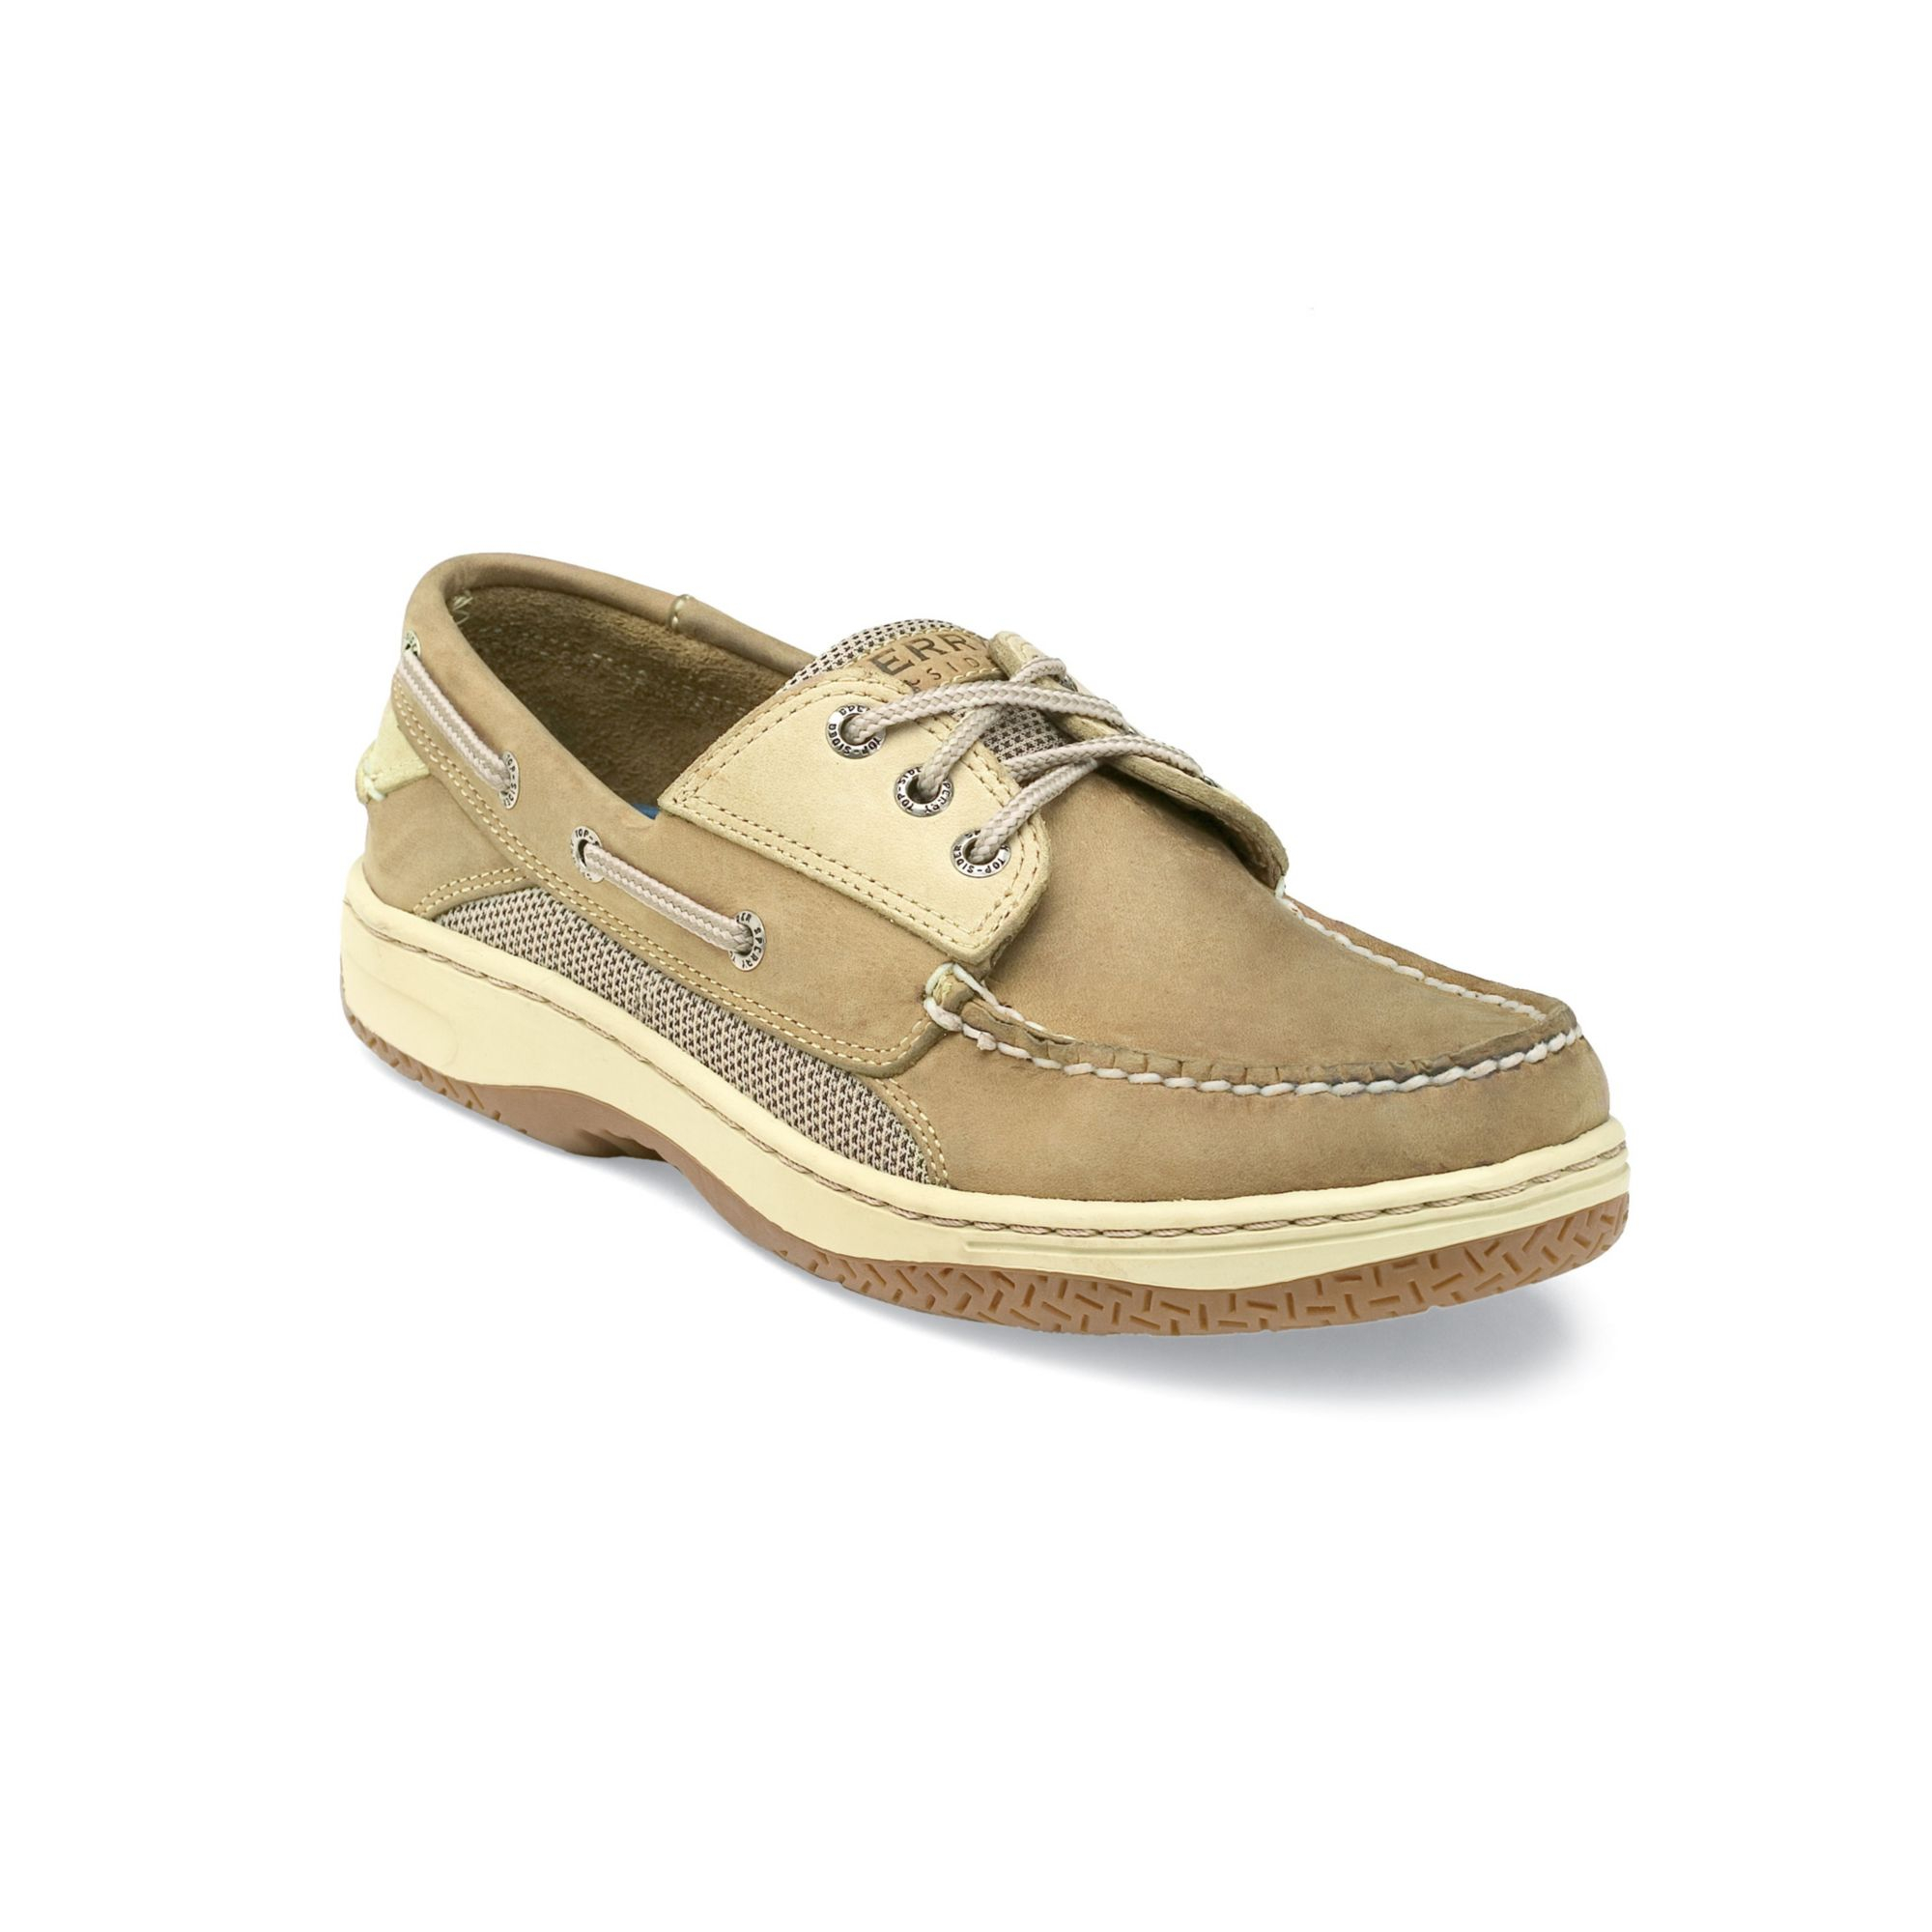 Macy S Mens Leather Boat Shoes